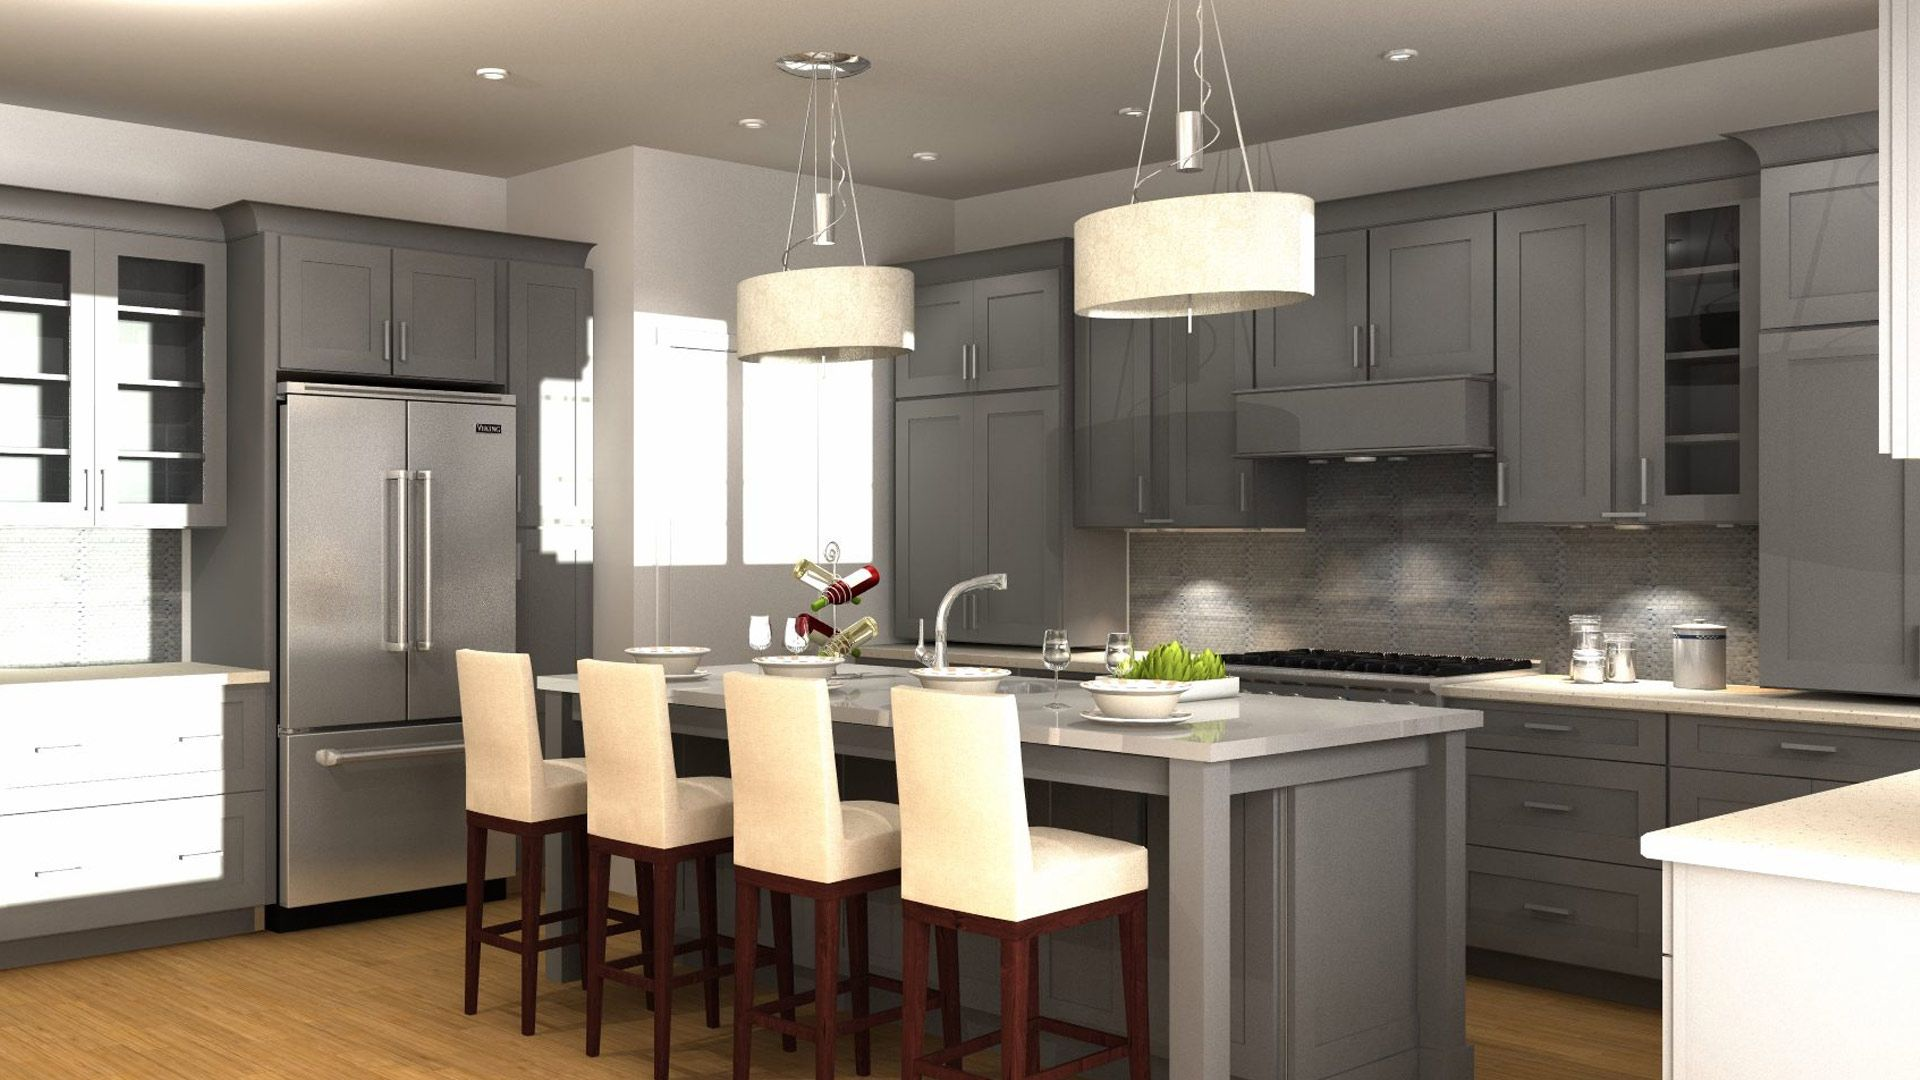 Kitchen Ideas 2020 Images